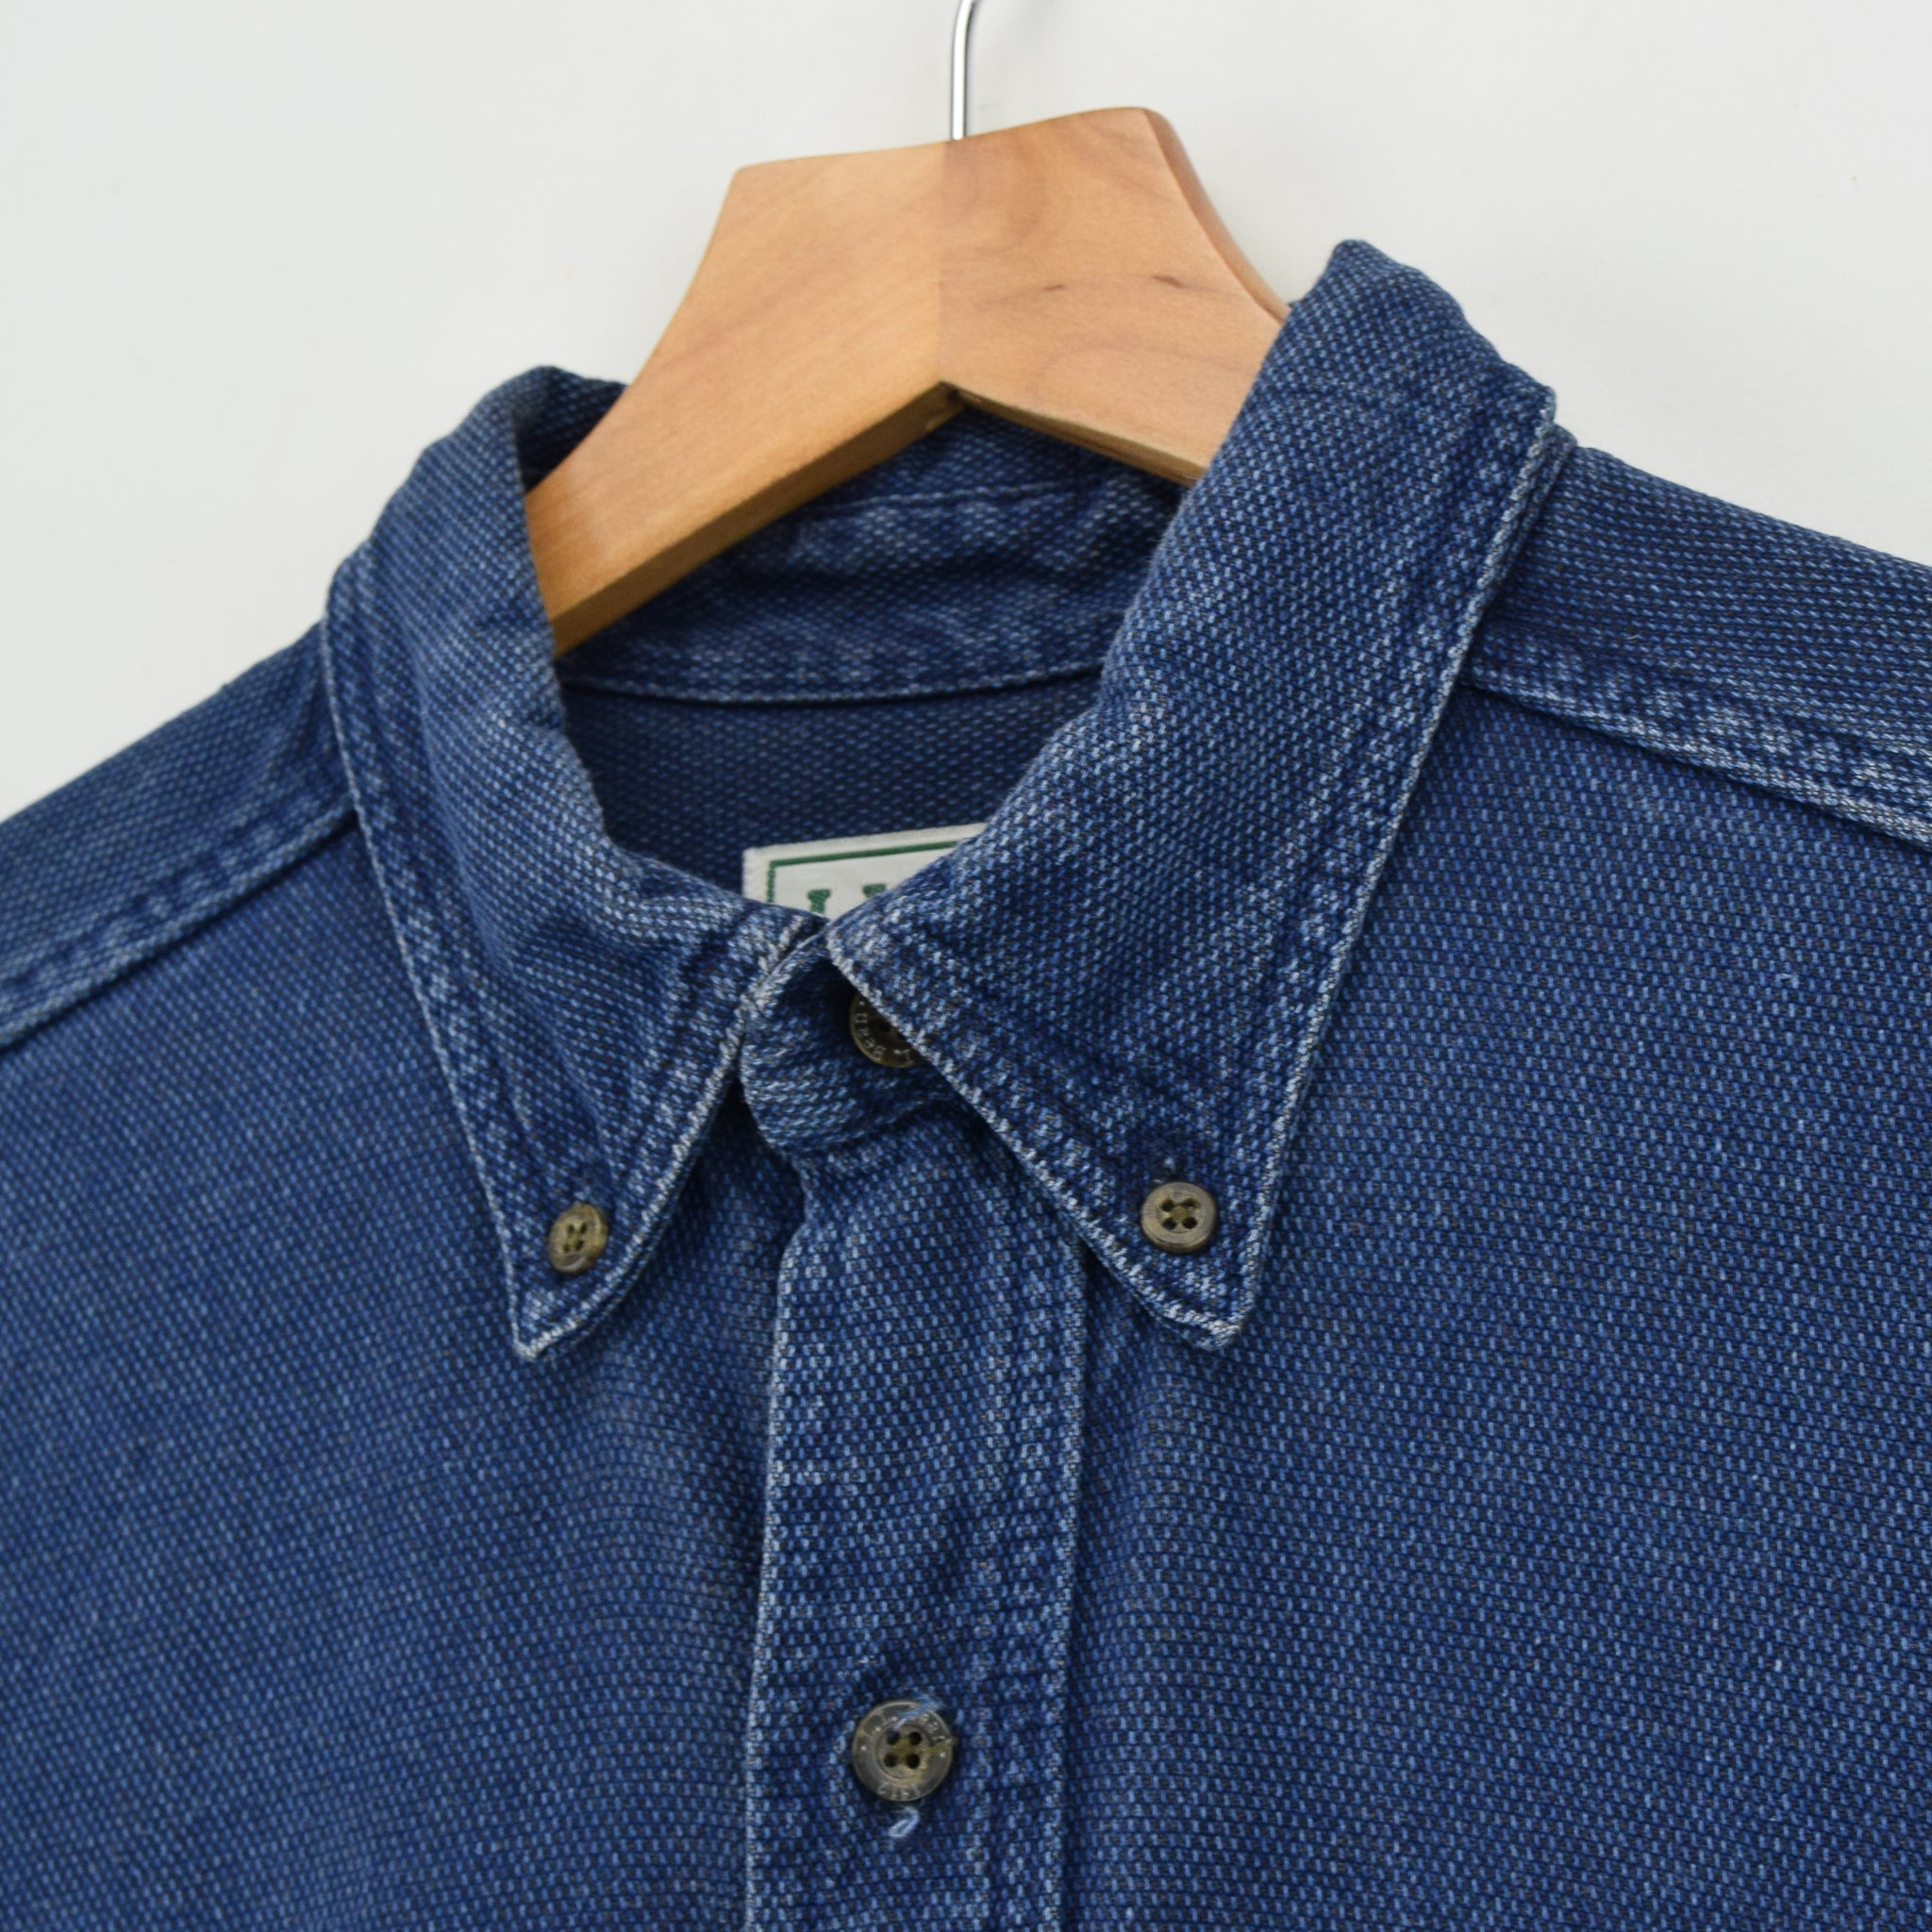 Vintage LL Bean AY45 Indigo Blue Cotton Shirt Long Sleeve Made in USA M Reg collar